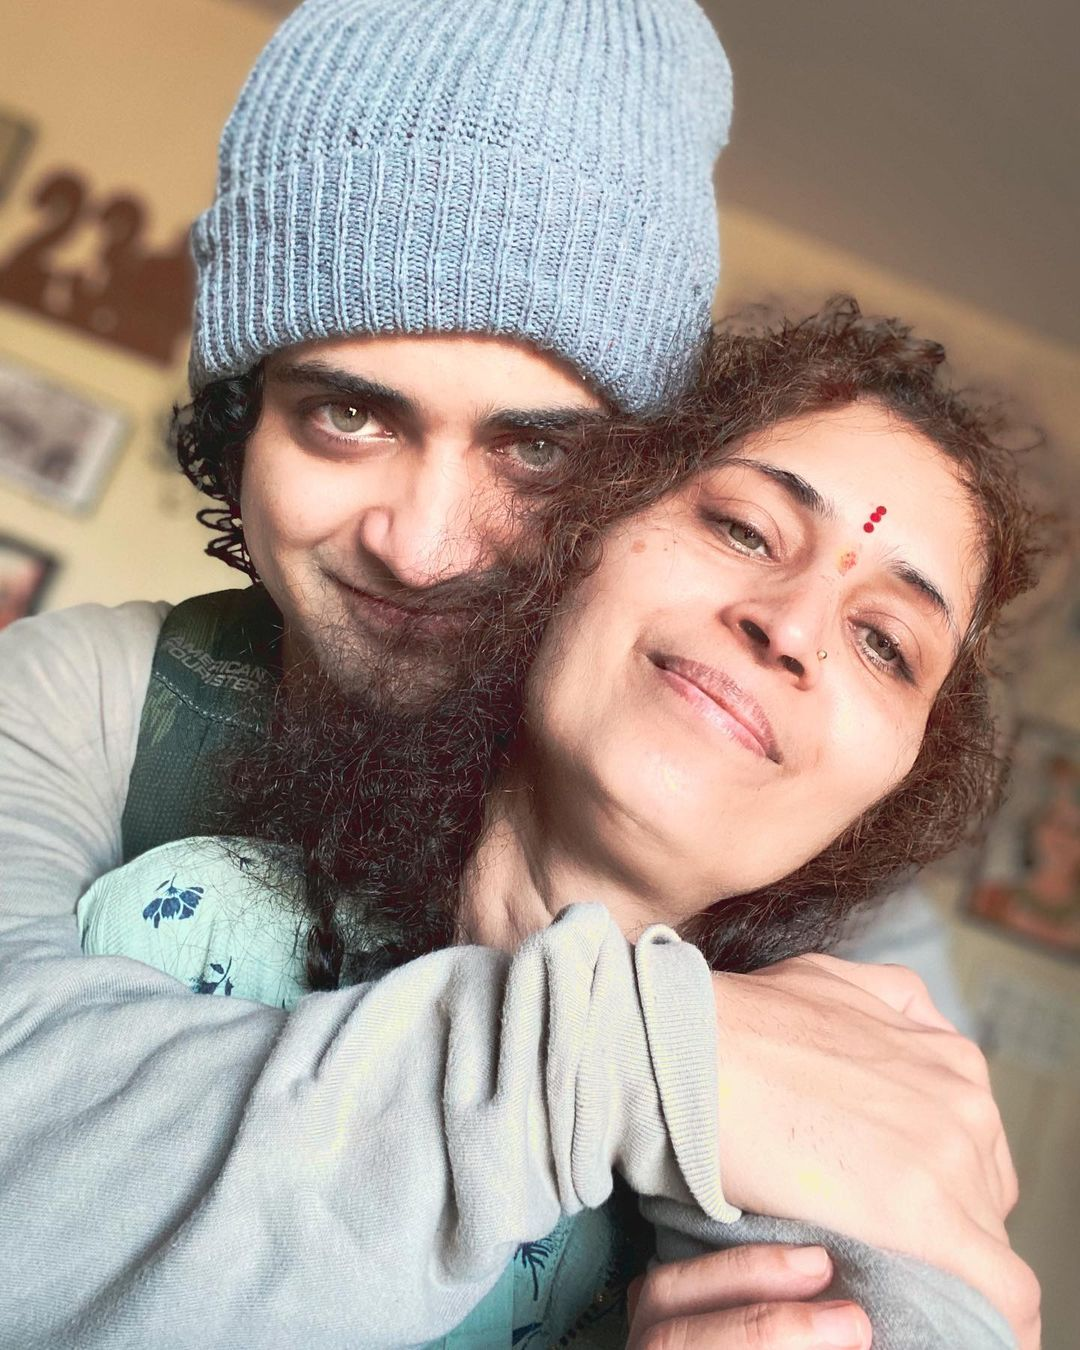 Mom Love: Radhakrishn fame Sumedh Mudgalkar & Mallika Singh's cutest moments with their mothers that made fans go aww - A9Themes News :: TV Serial :: cutest moments, Mallika Singh, RadhaKrishn fame, Sumedh Mudgalkar by A9Themes Media on A9Themes News